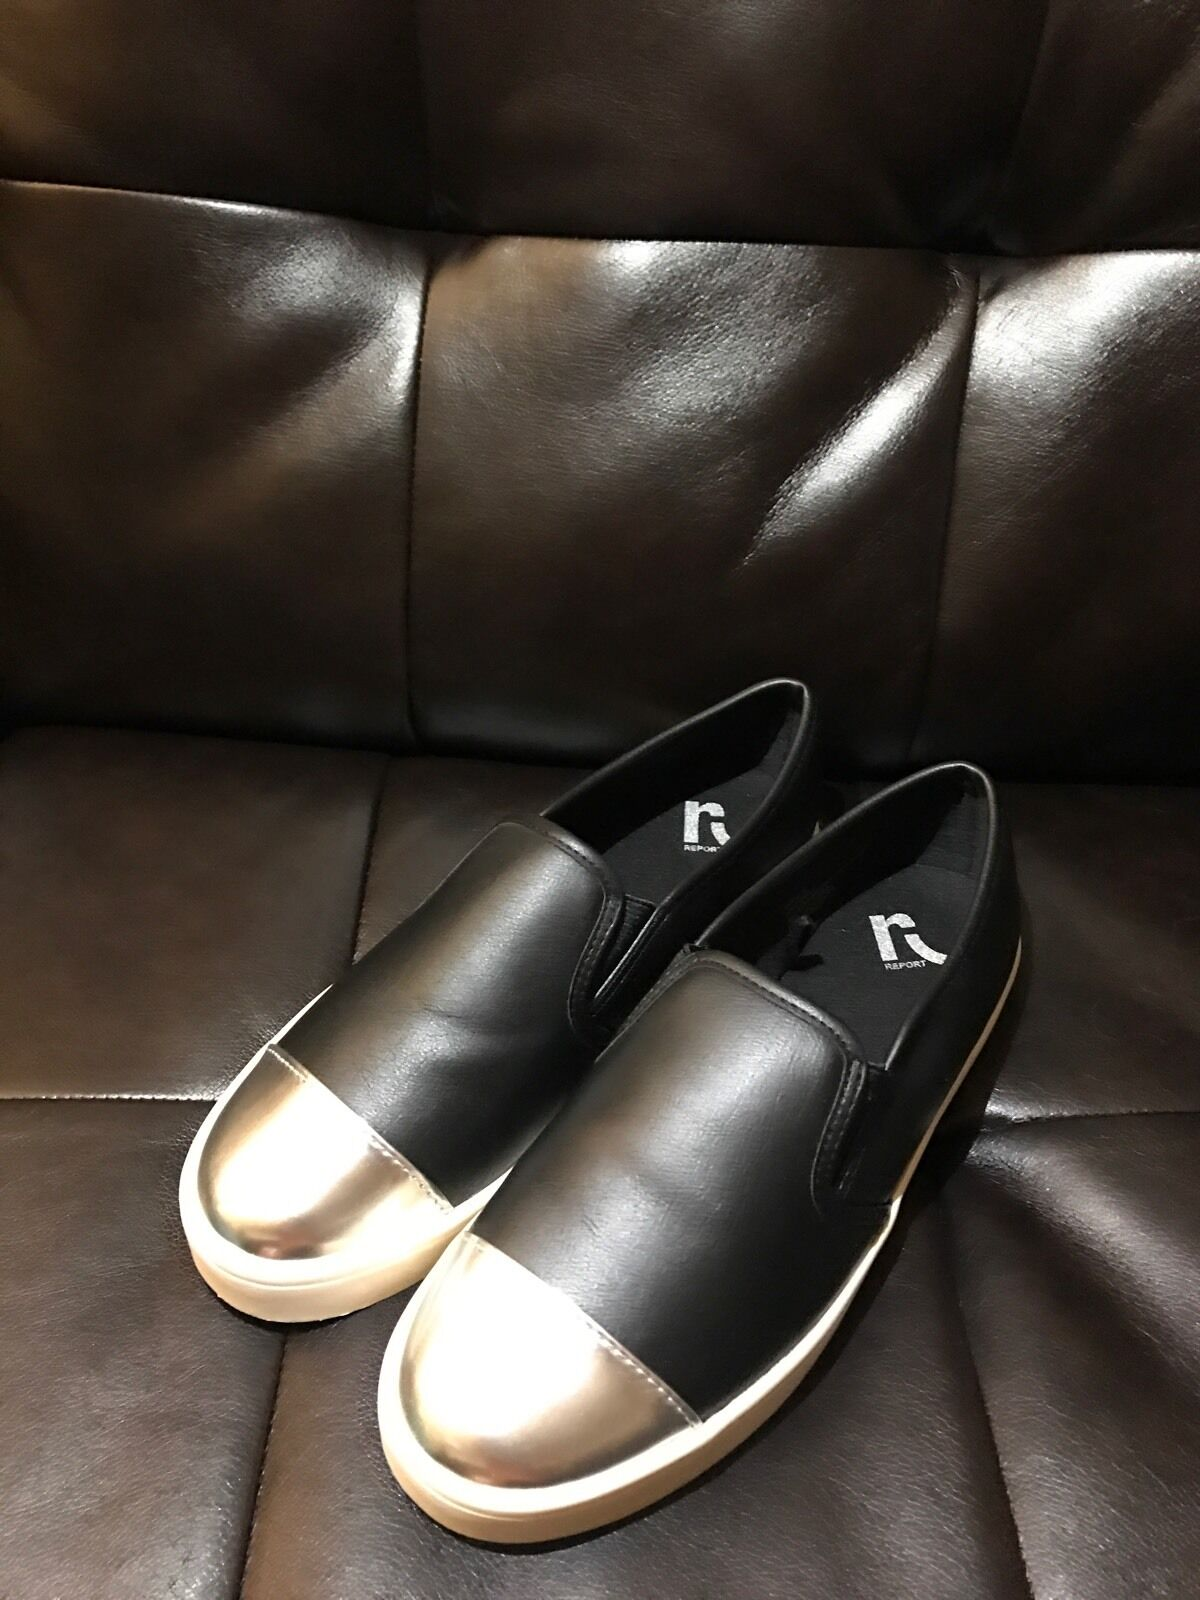 Auth REPORT Black Silver Leather Slip On Loafer Sneakers Flats 10 fits 9.5 10